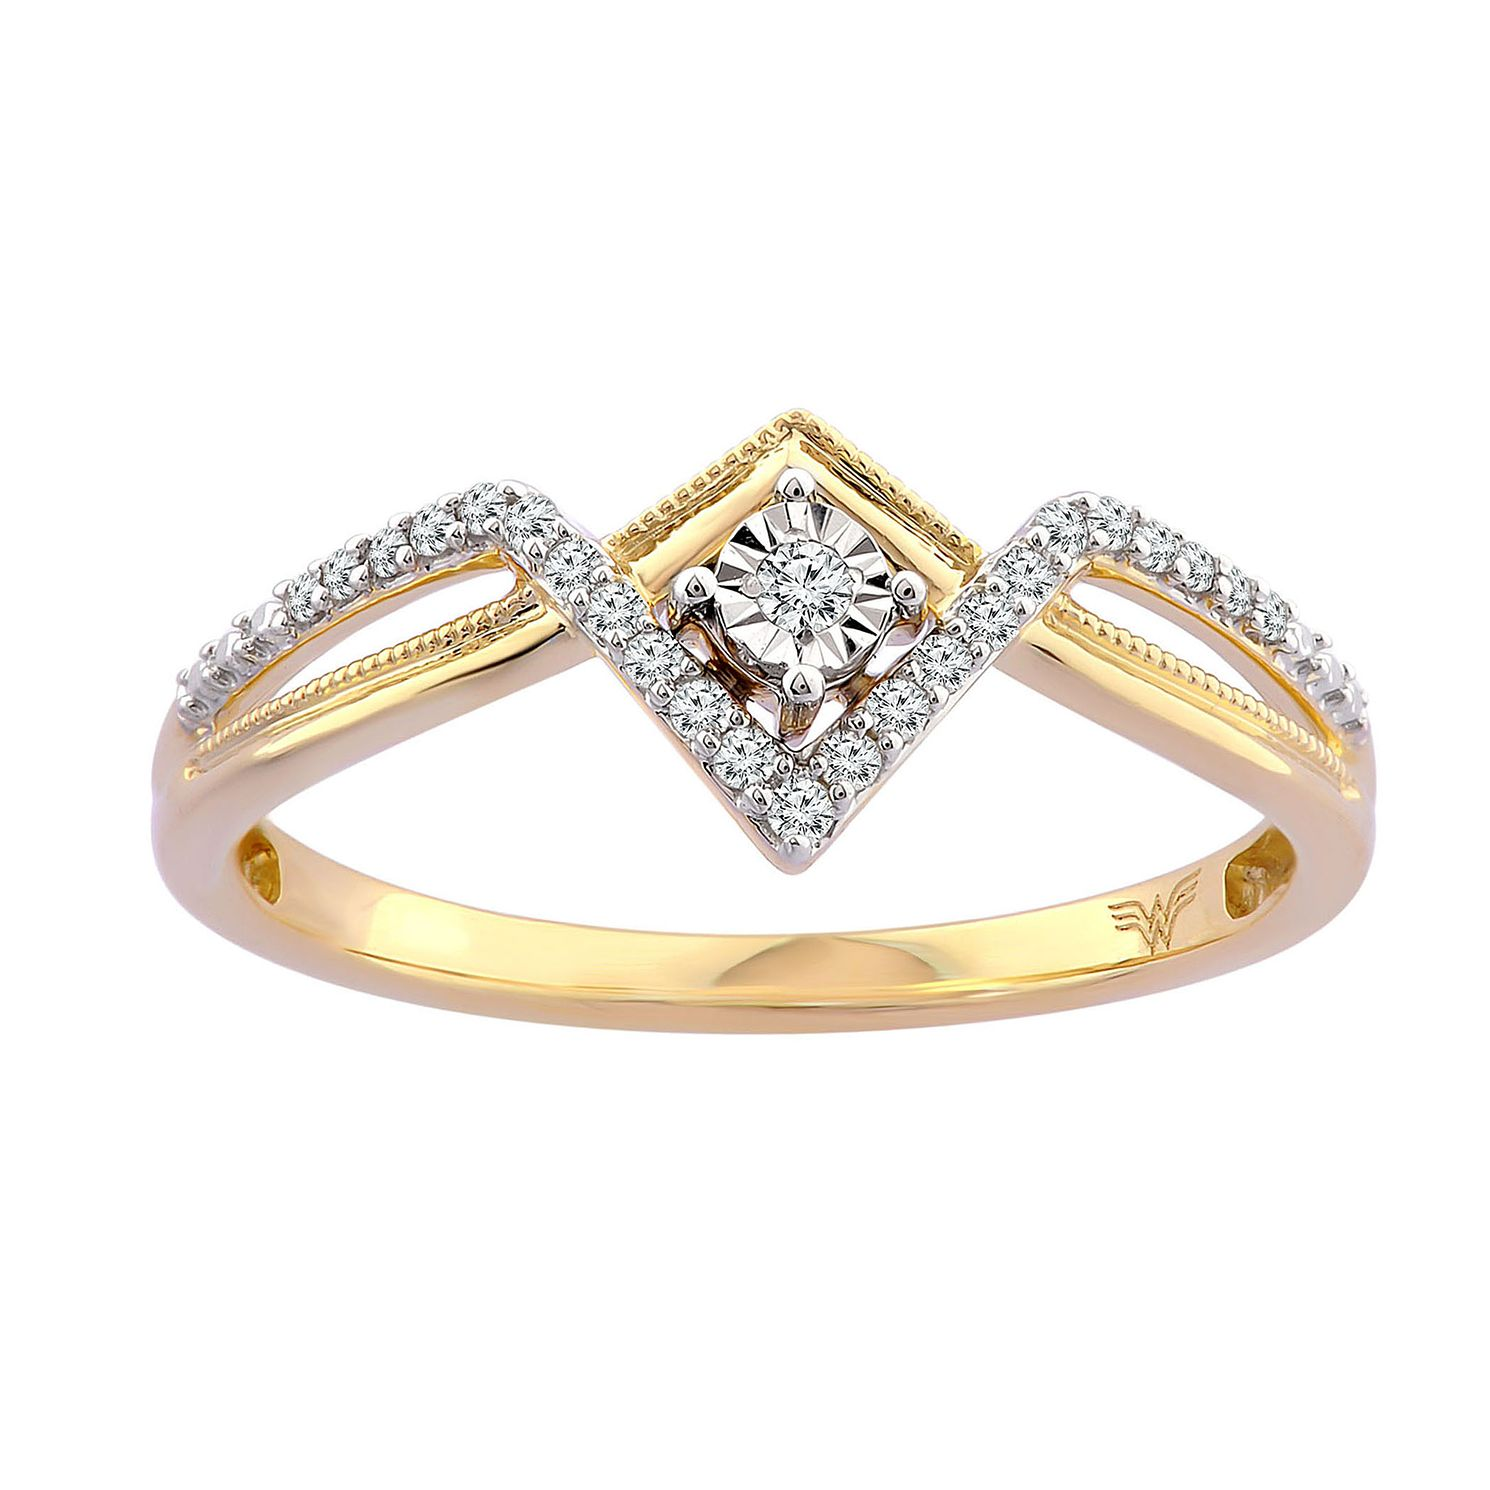 Wonder Woman 9ct Gold Diamond Ring - Product number 1009761